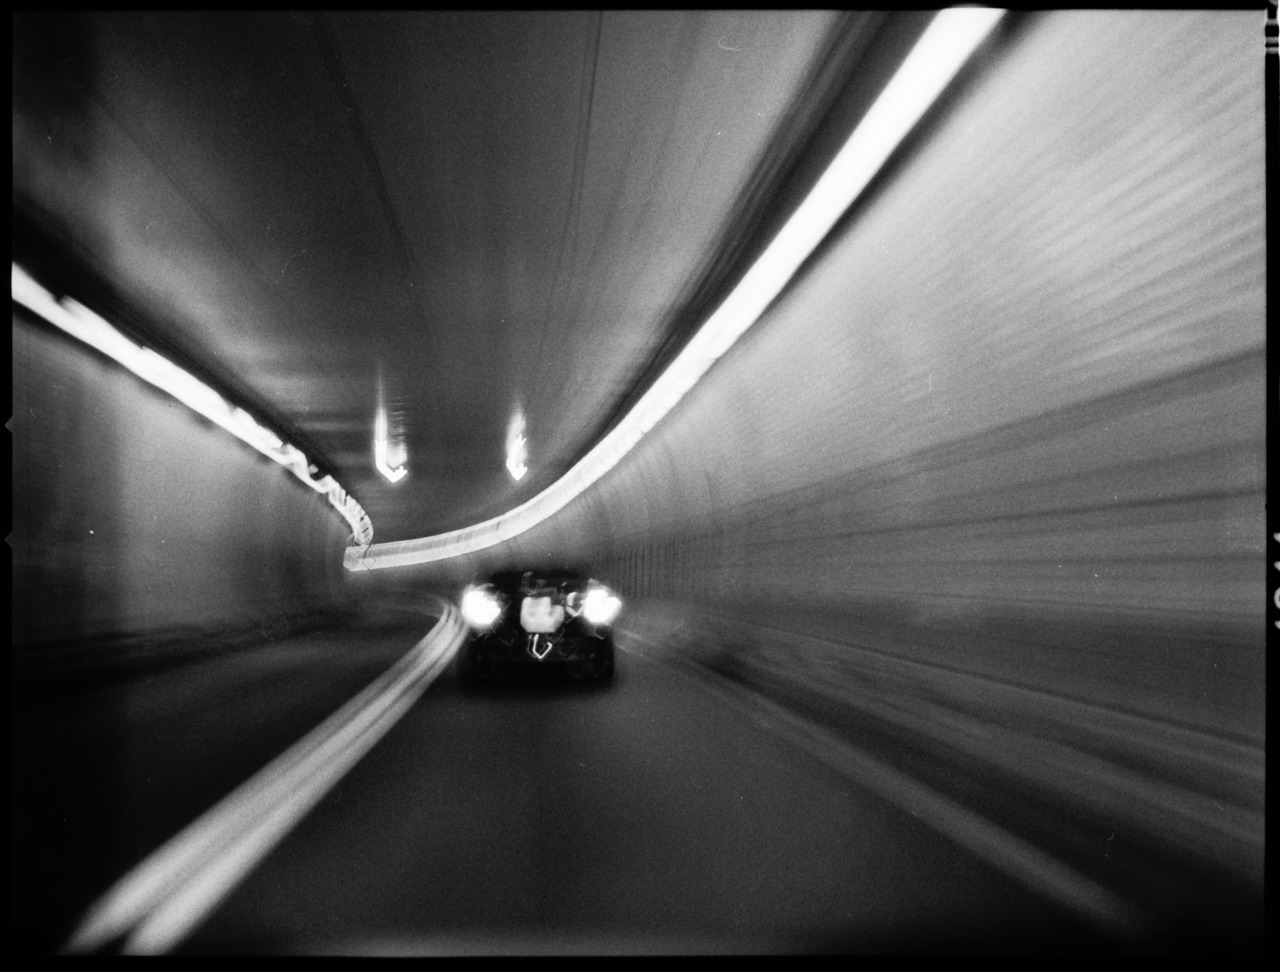 Holland Tunnel Hasselblad 500C/M (A16 back) Zeiss Prontor CF T* 80mm f/2.8 Ilford Delta Pro 3200 Kodak D-76 CanoScan 8800F